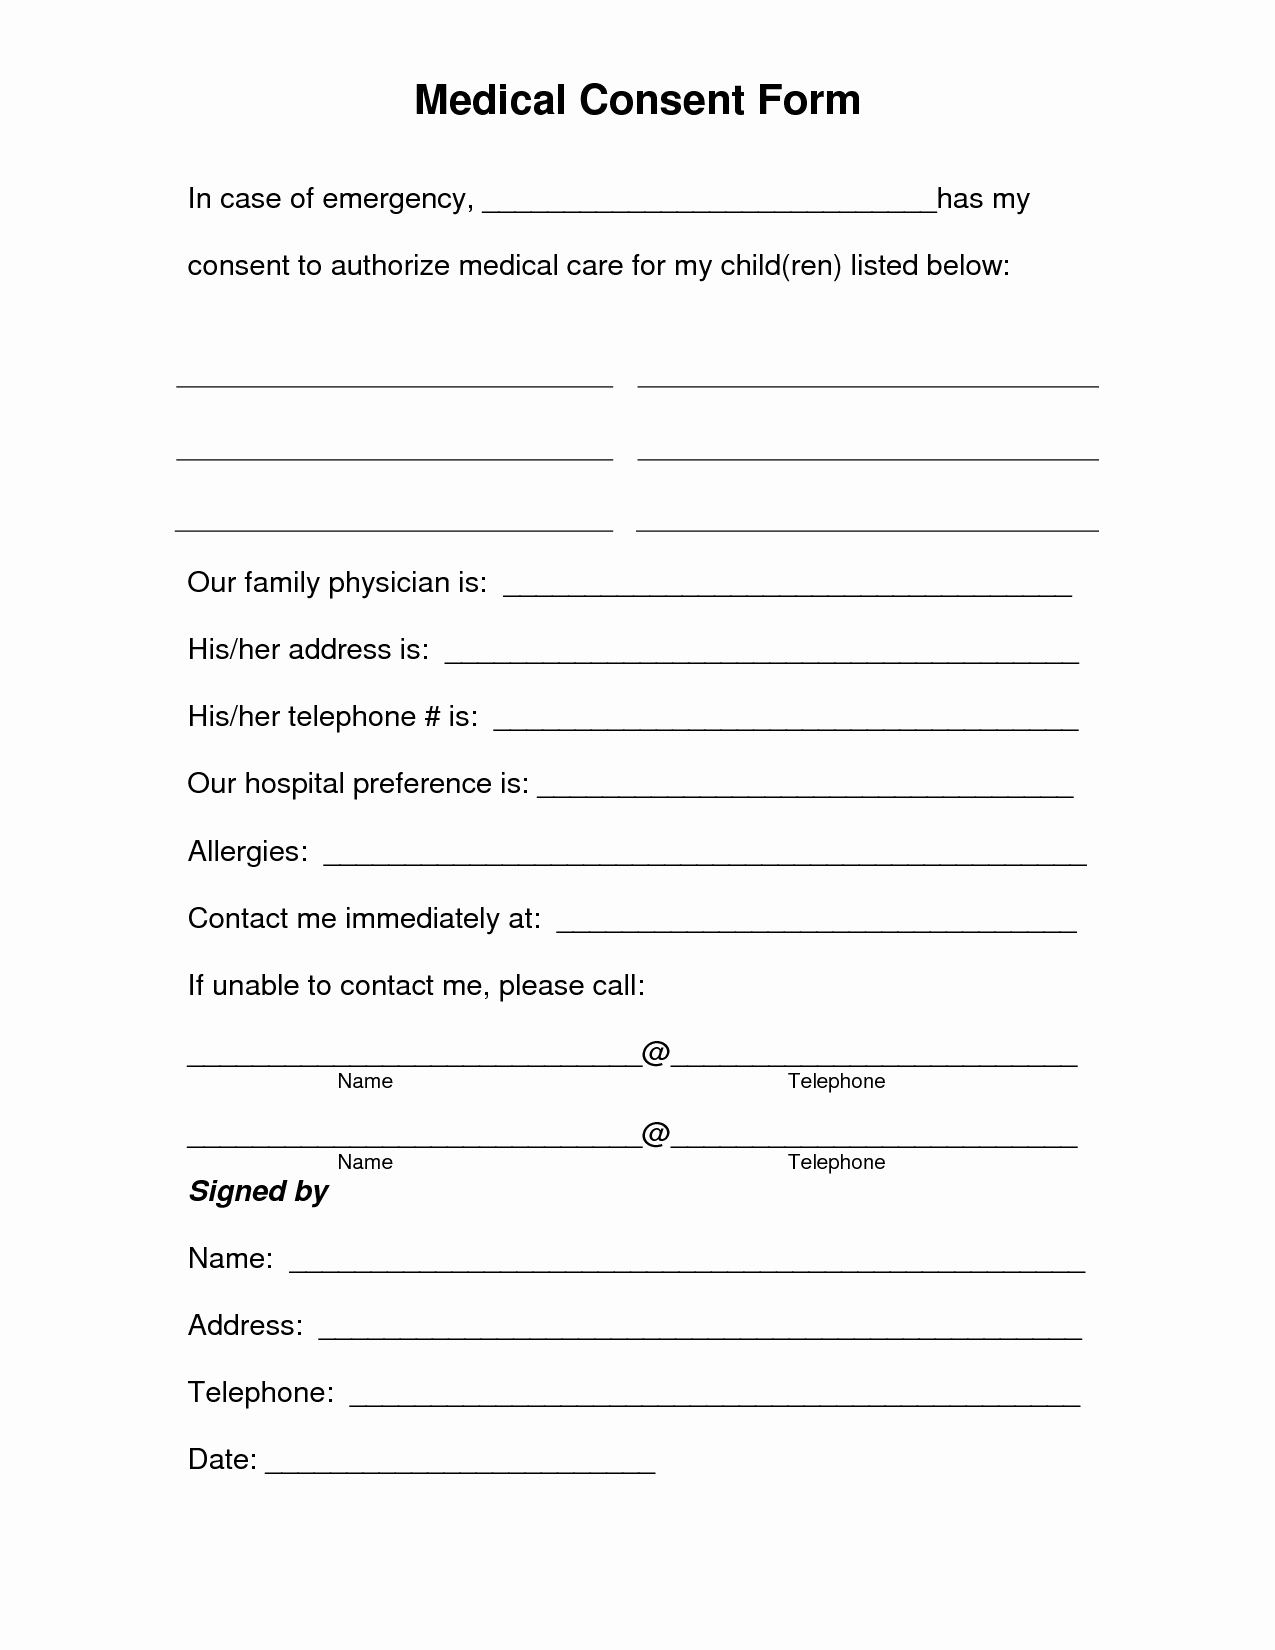 Child Medical Consent form Template Beautiful Free Printable Medical Consent form